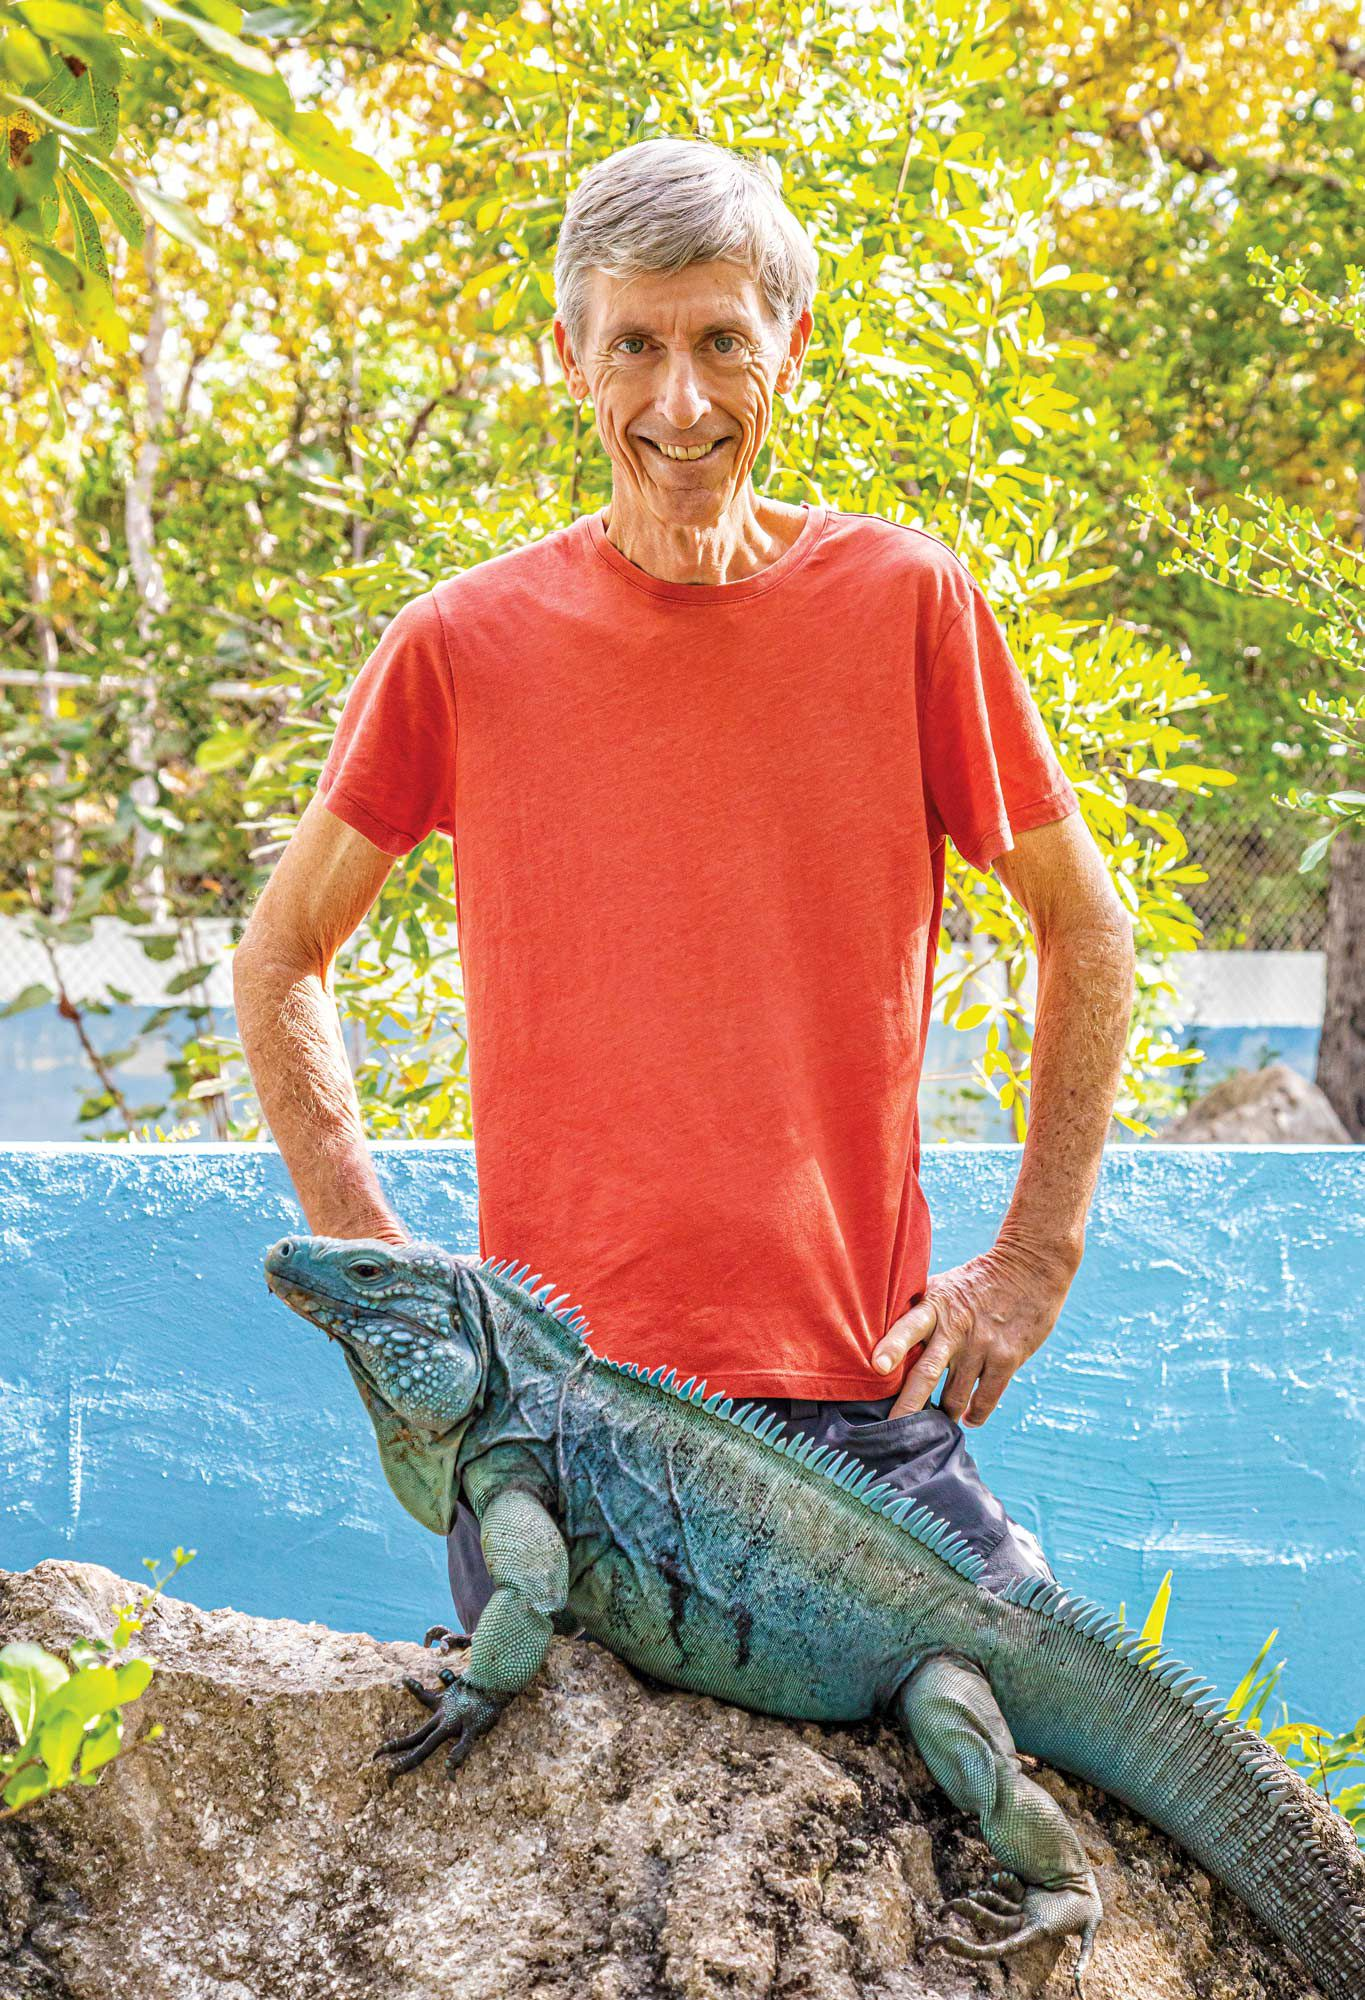 Fred Burton helped rescue the Cayman Islands blue iguana from the brink of extinction.